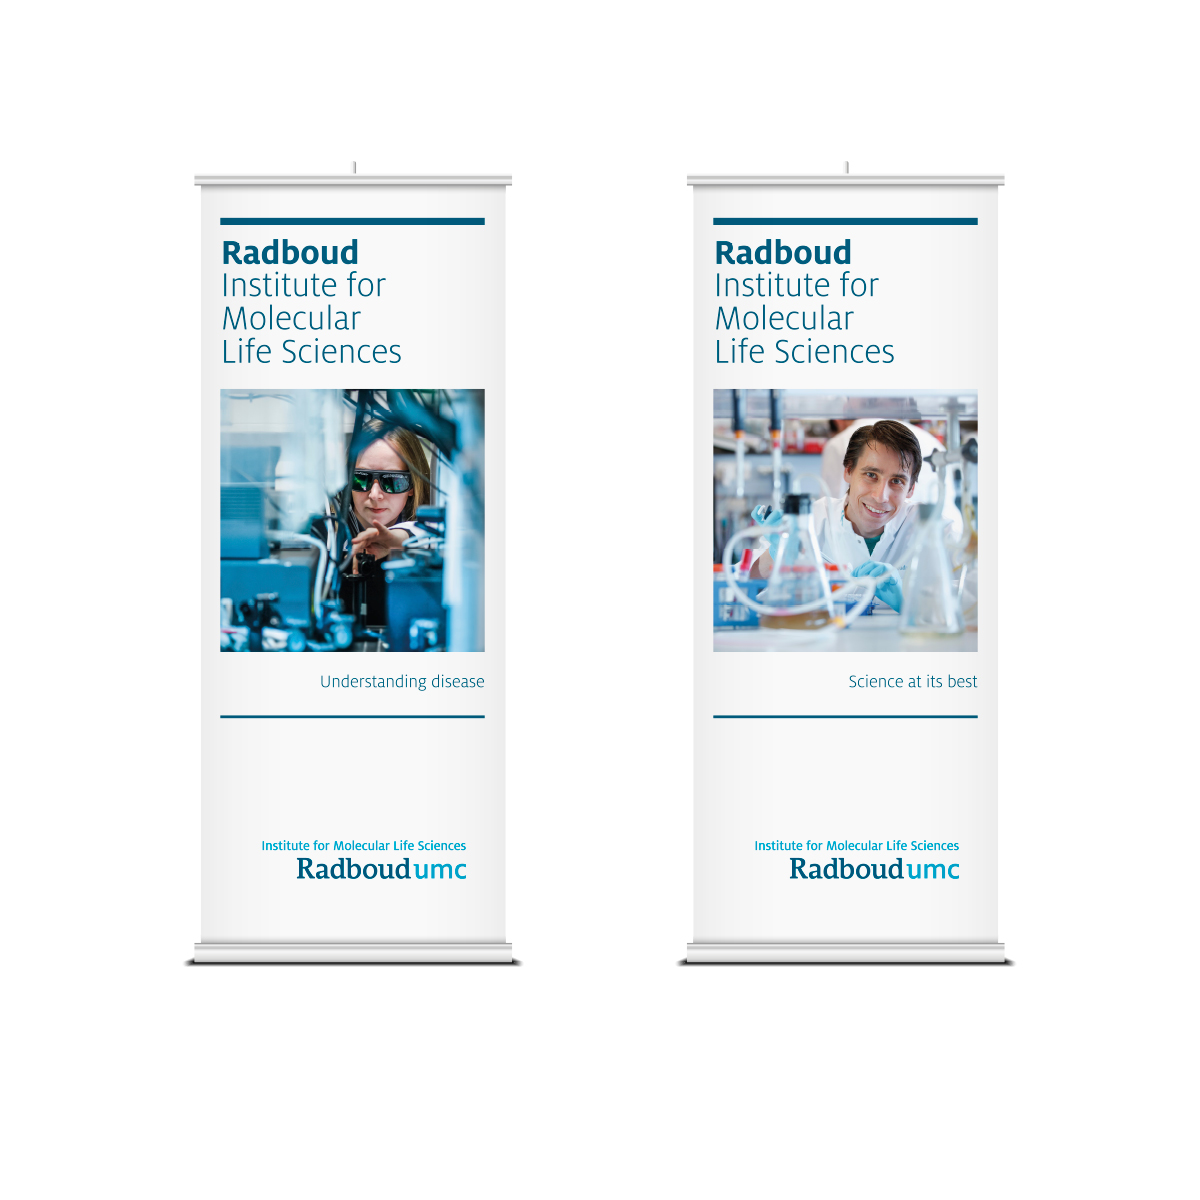 Roll up banner corporate communicatie Radboudumc - Communicatiebureau Puntkomma Nijmegen